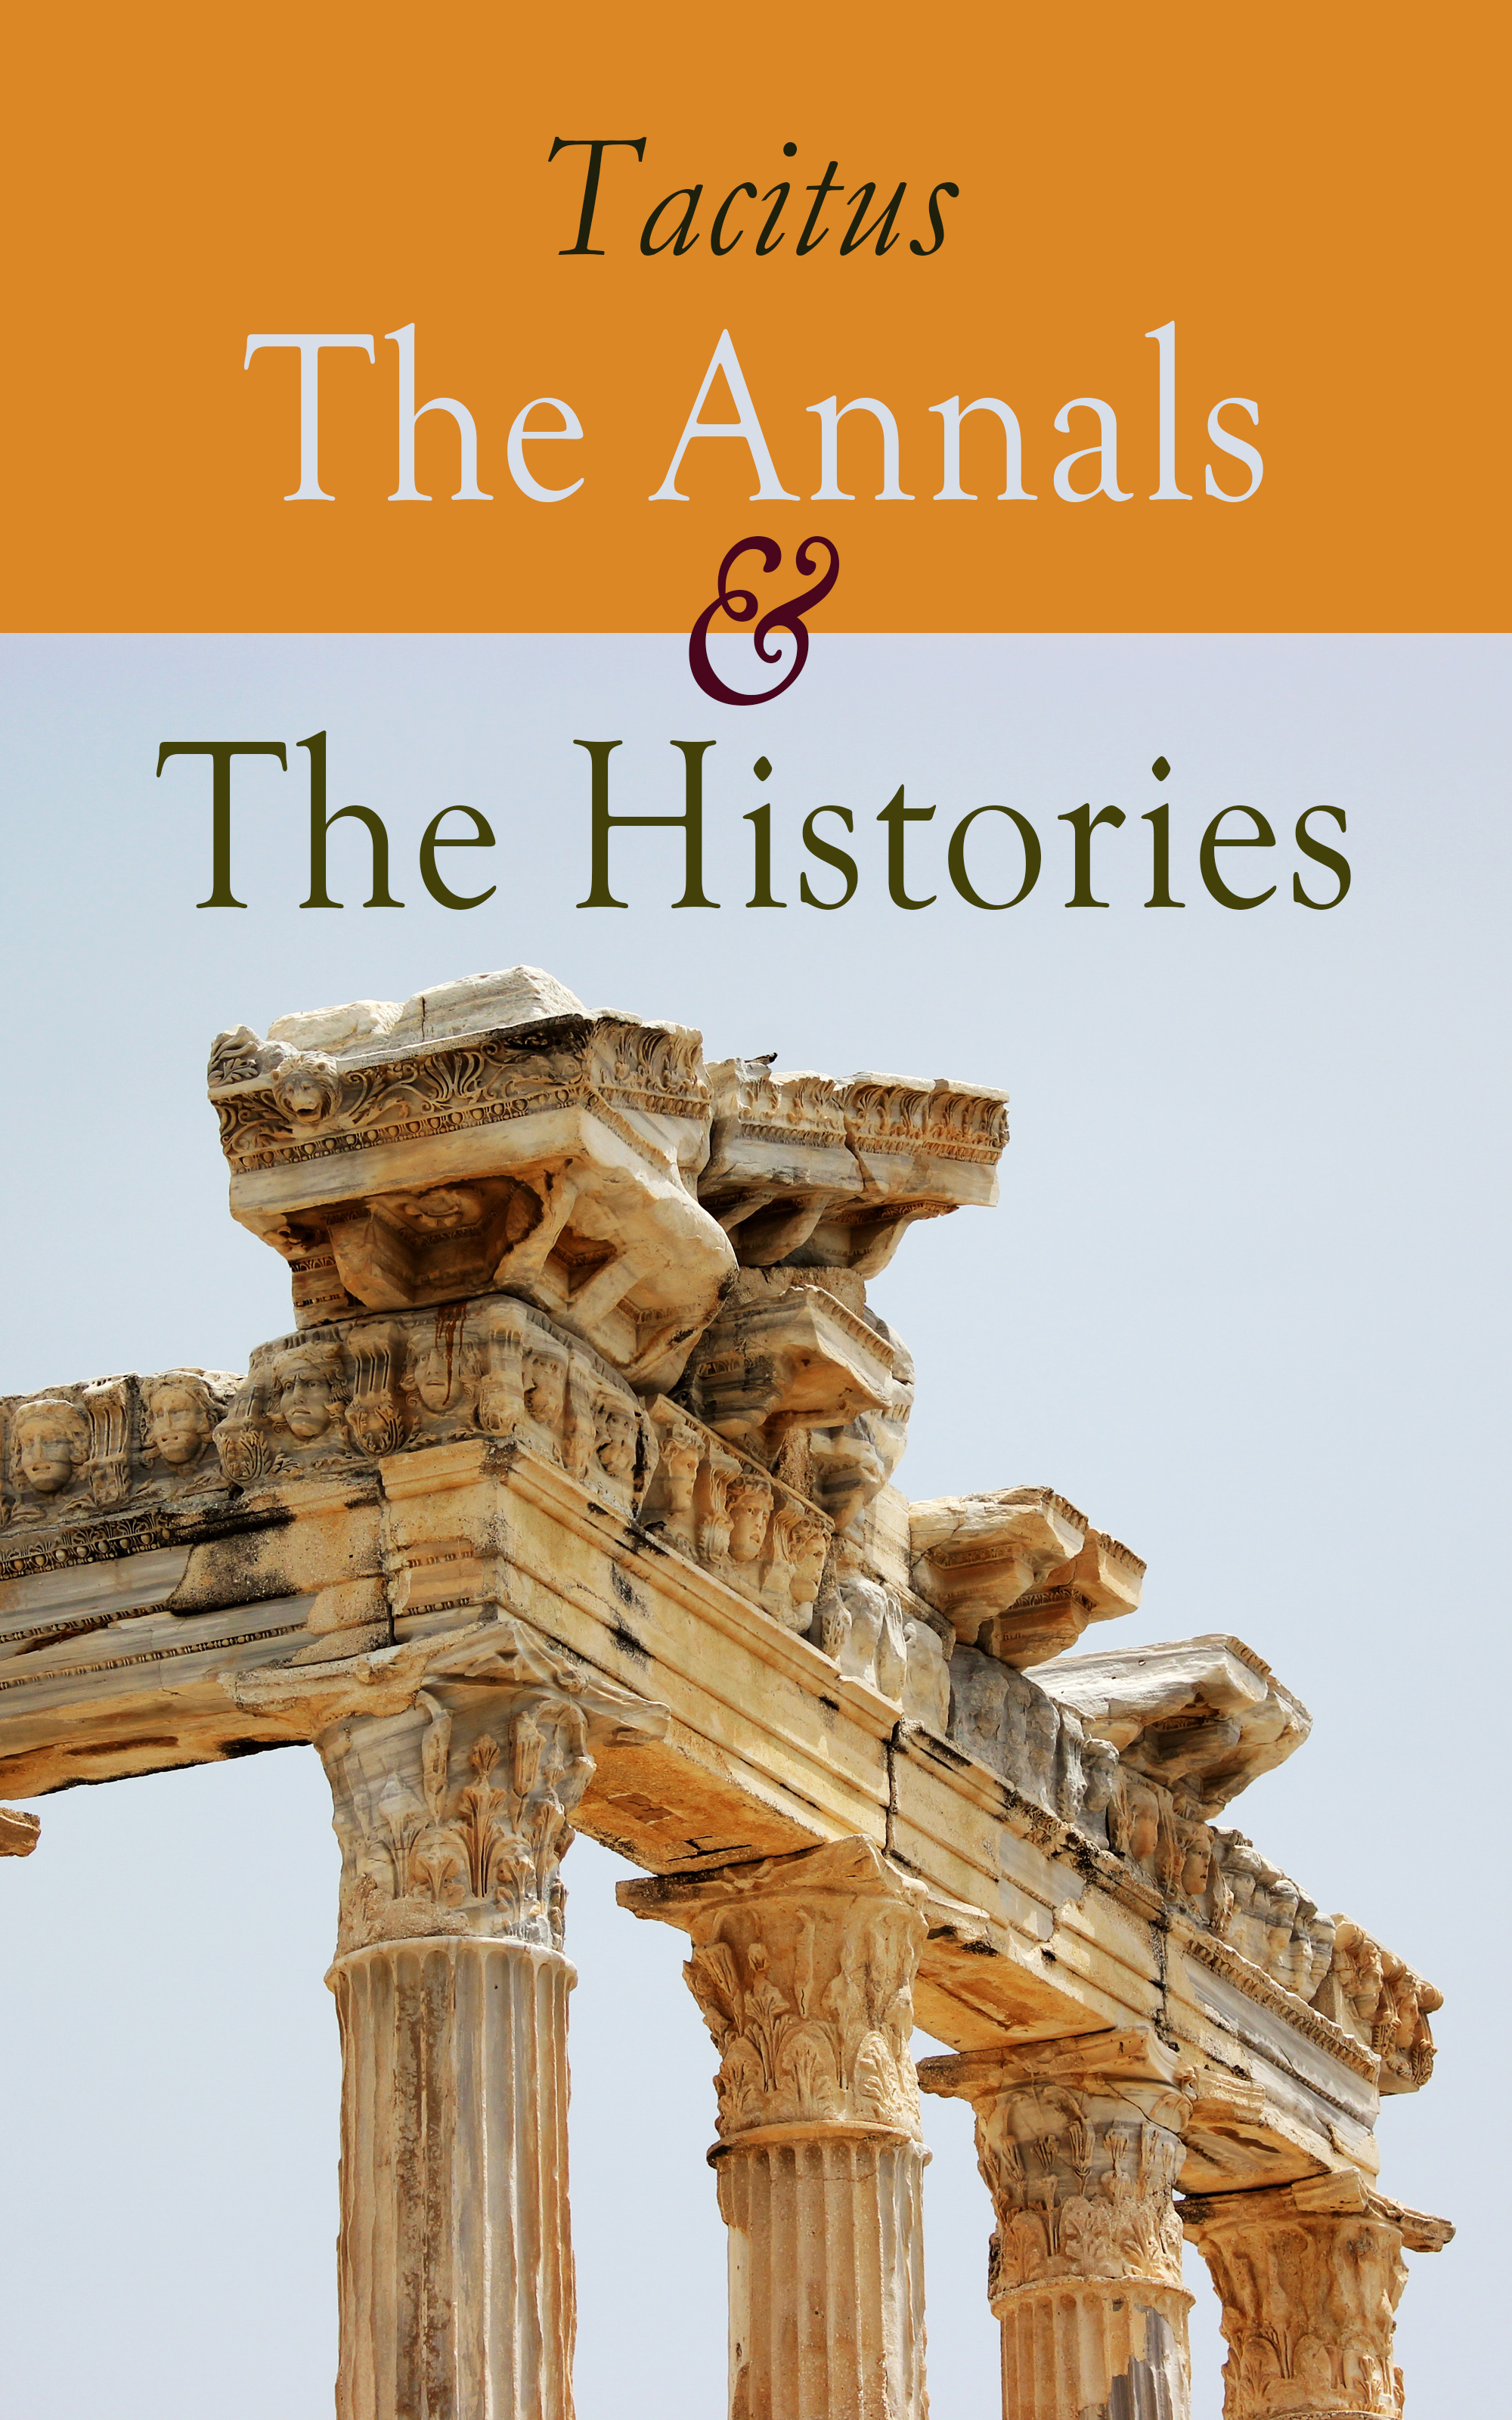 Tacitus The Annals & The Histories histories